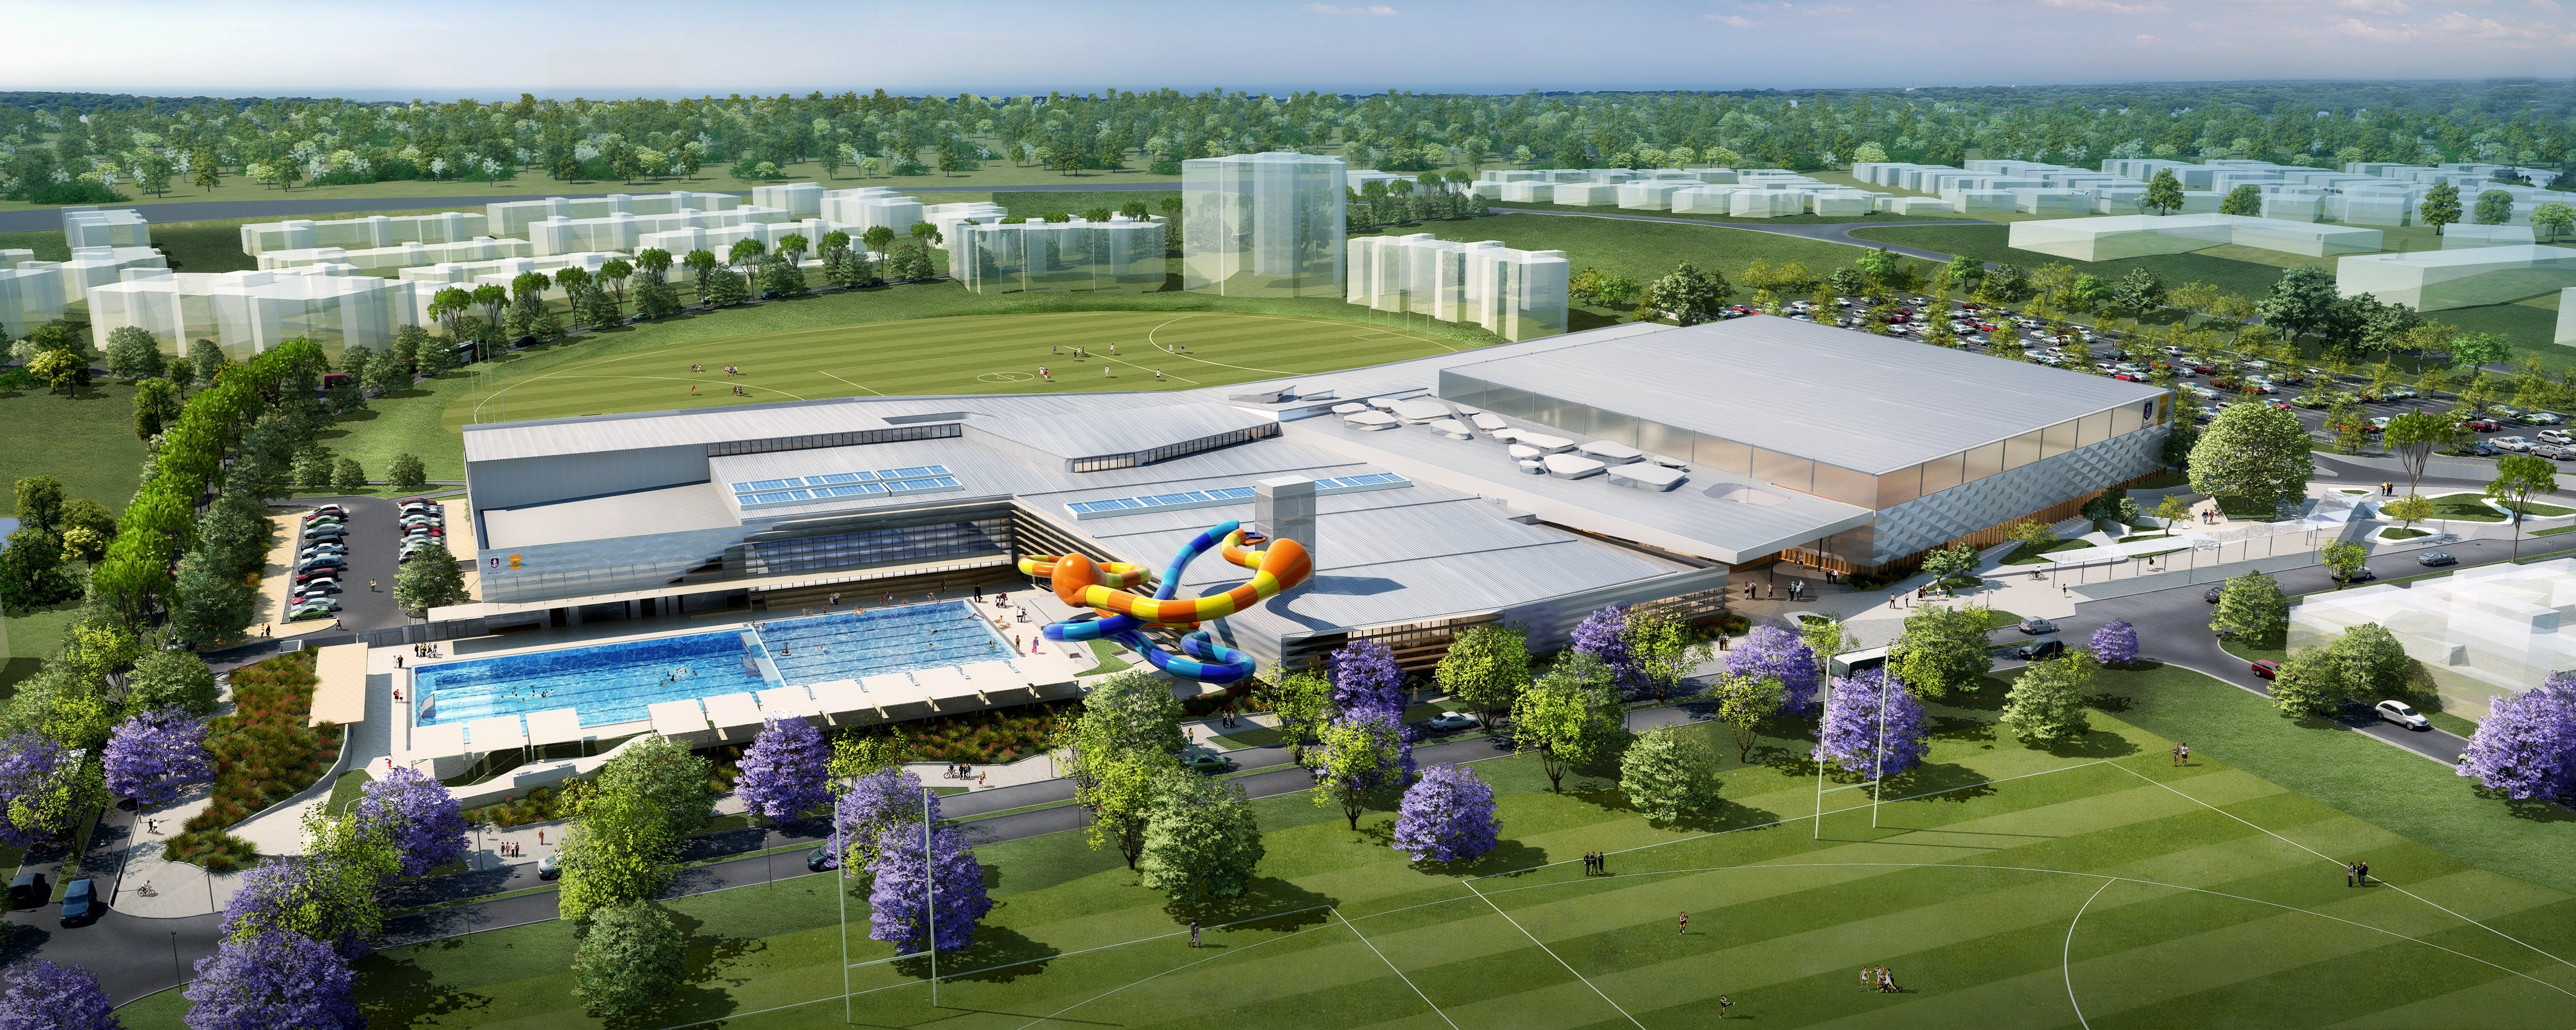 Artist's Impressions - all facilities